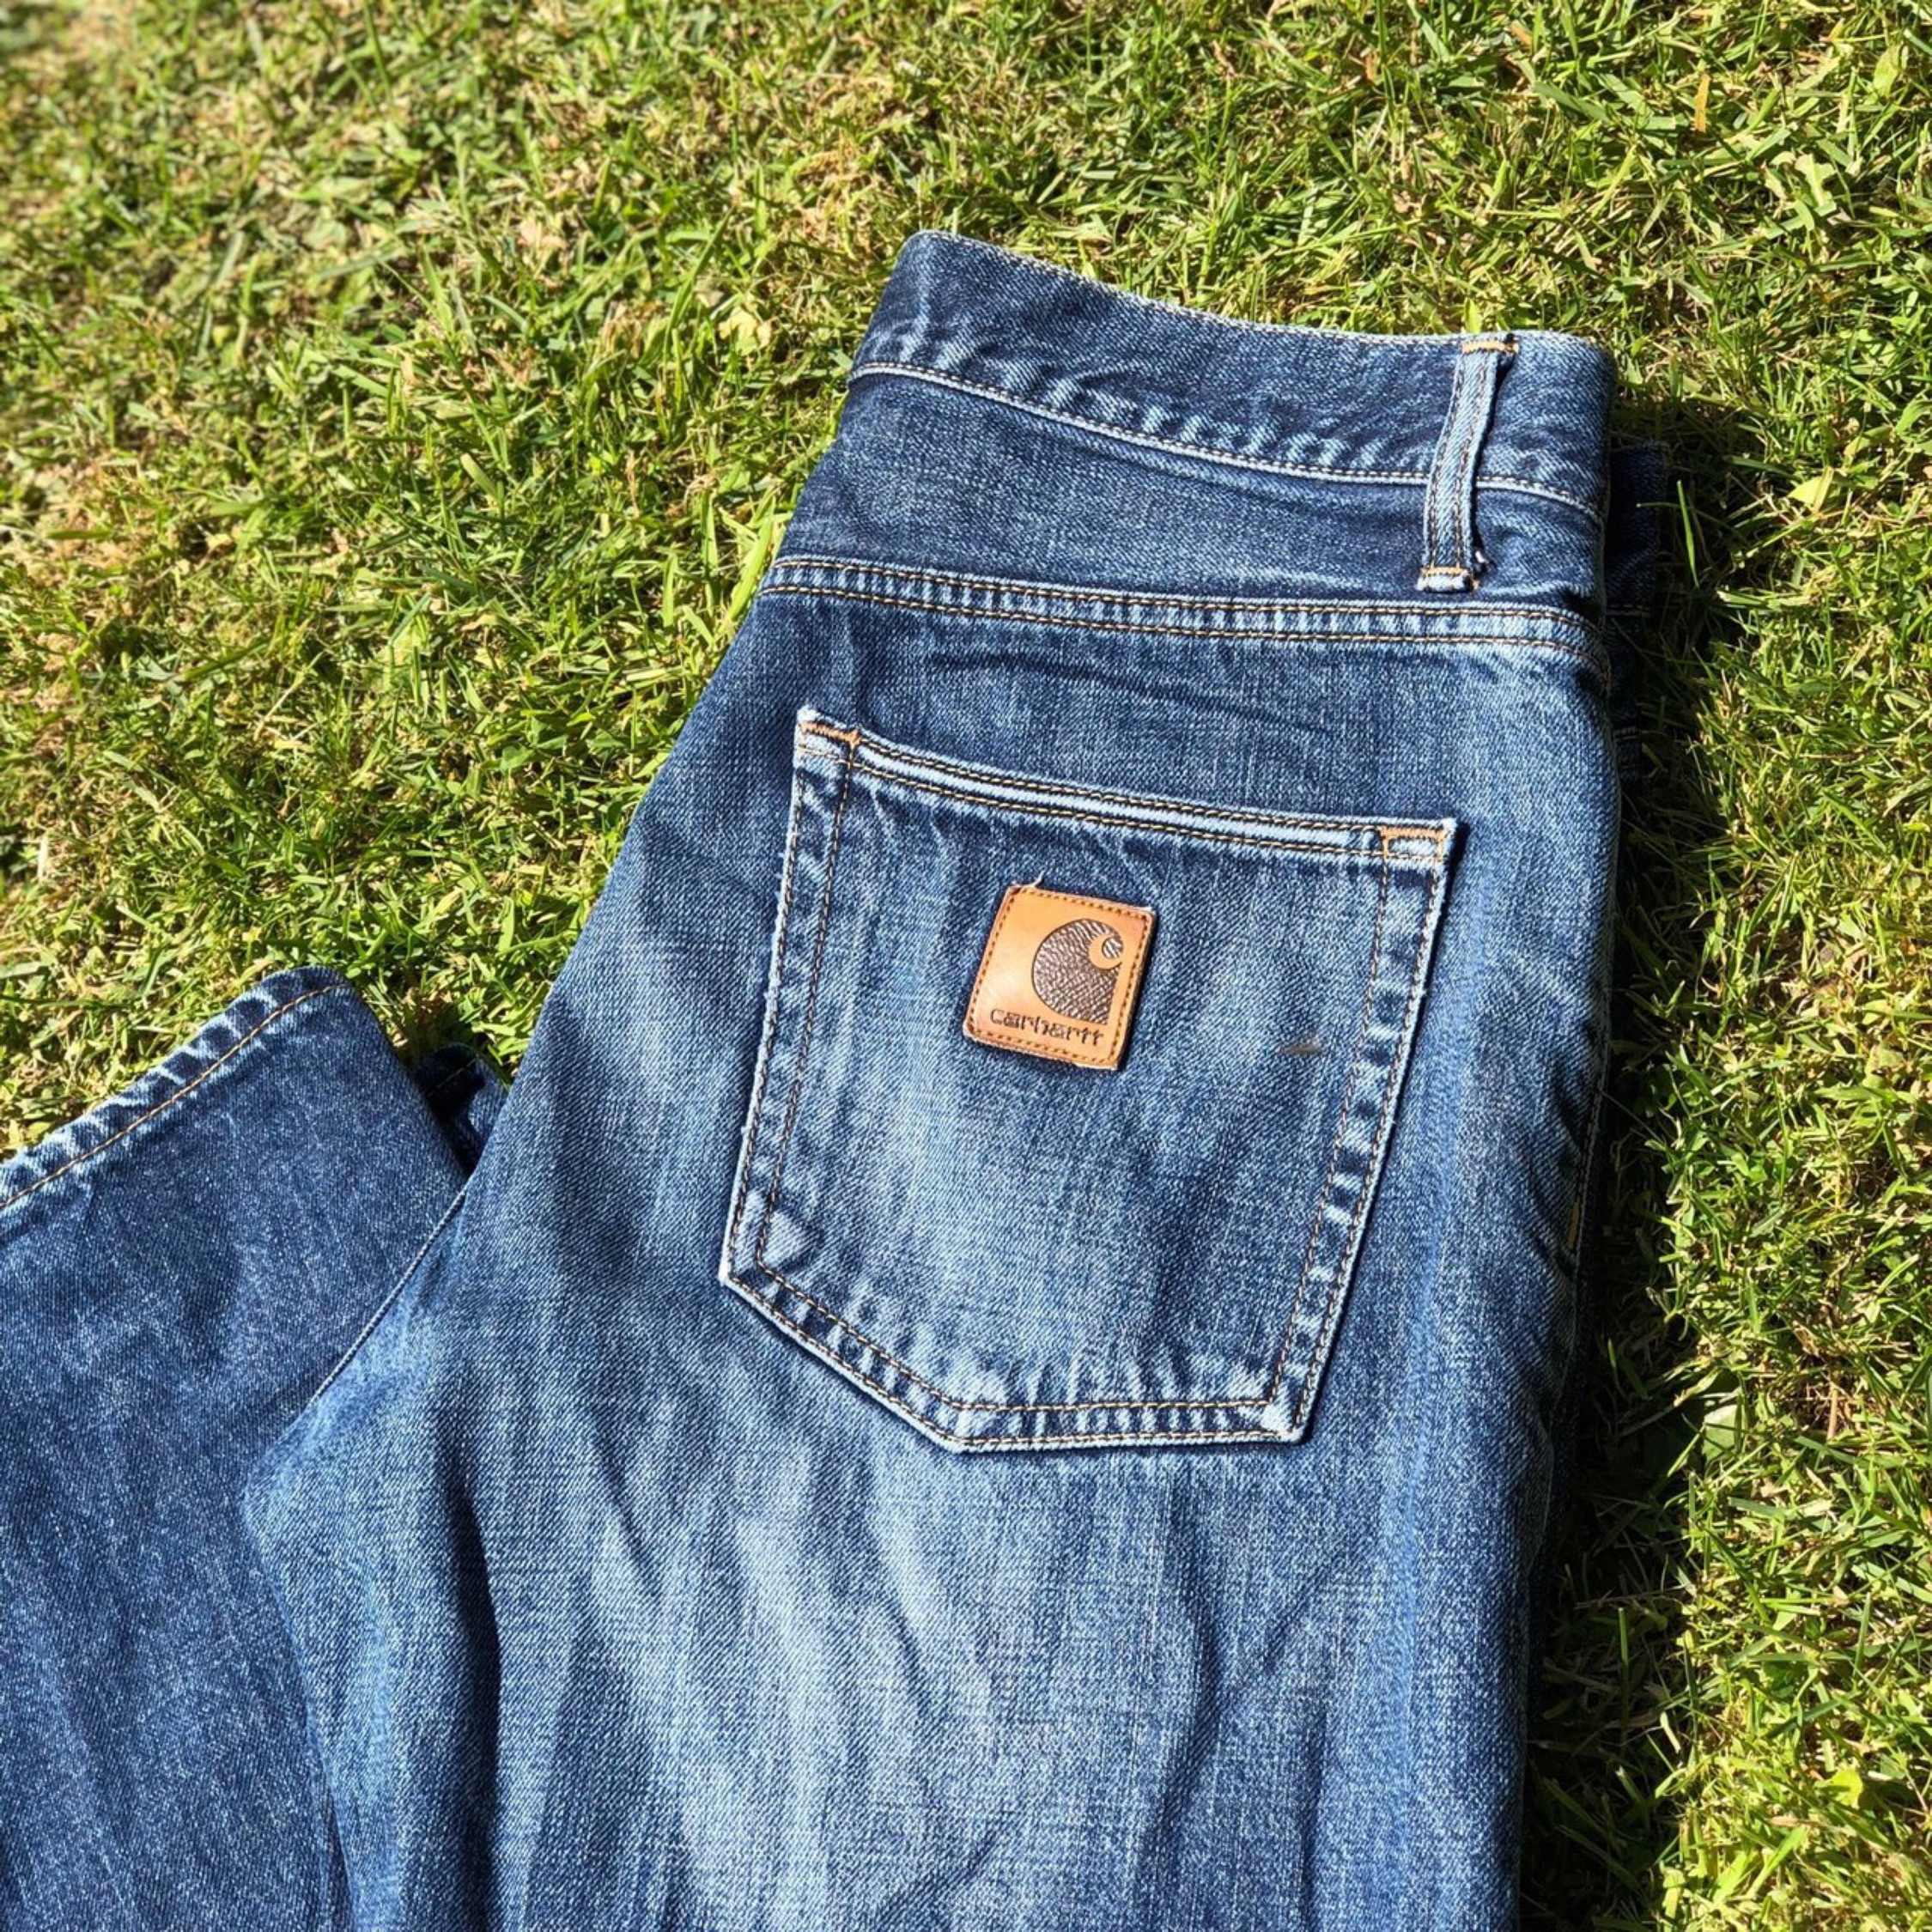 Y2K Carhartt Jeans Labelled Size 36X32